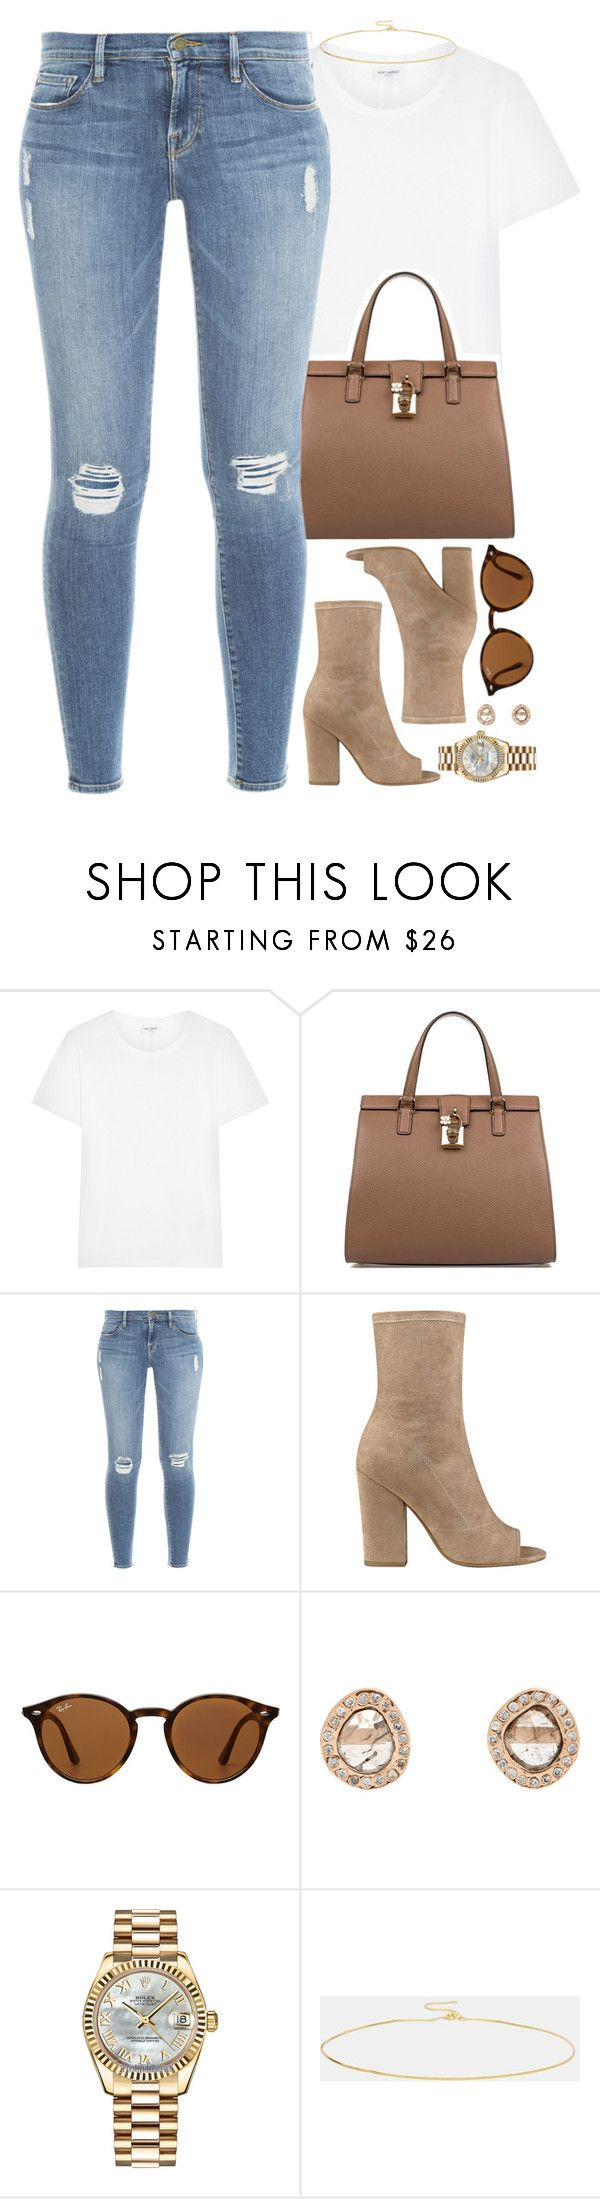 """"""""""" by daisym0nste ❤ liked on Polyvore featuring Yves Saint Laurent, Dolce&Gabbana, Frame, GUESS, Ray-Ban, Dezso by Sara Beltrán, Rolex and ASOS"""